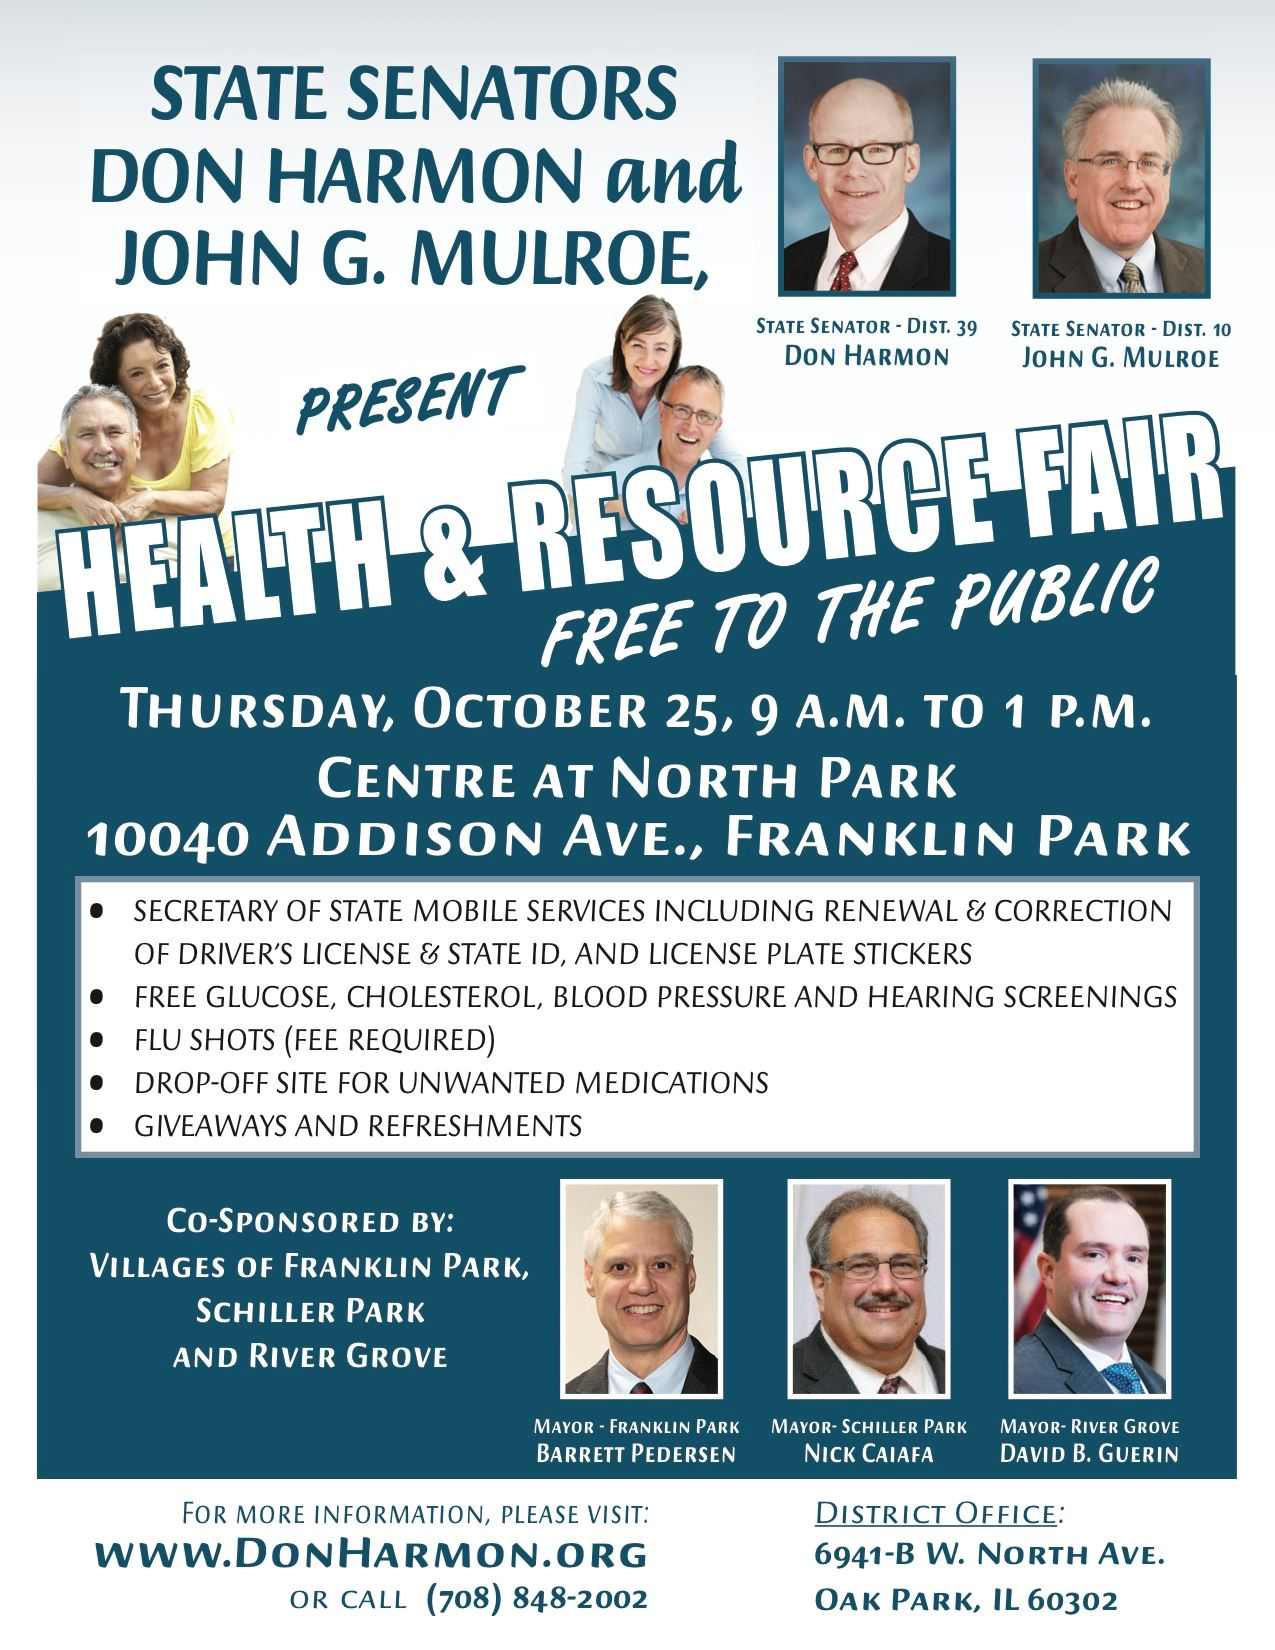 Health Resource Fair Flyer